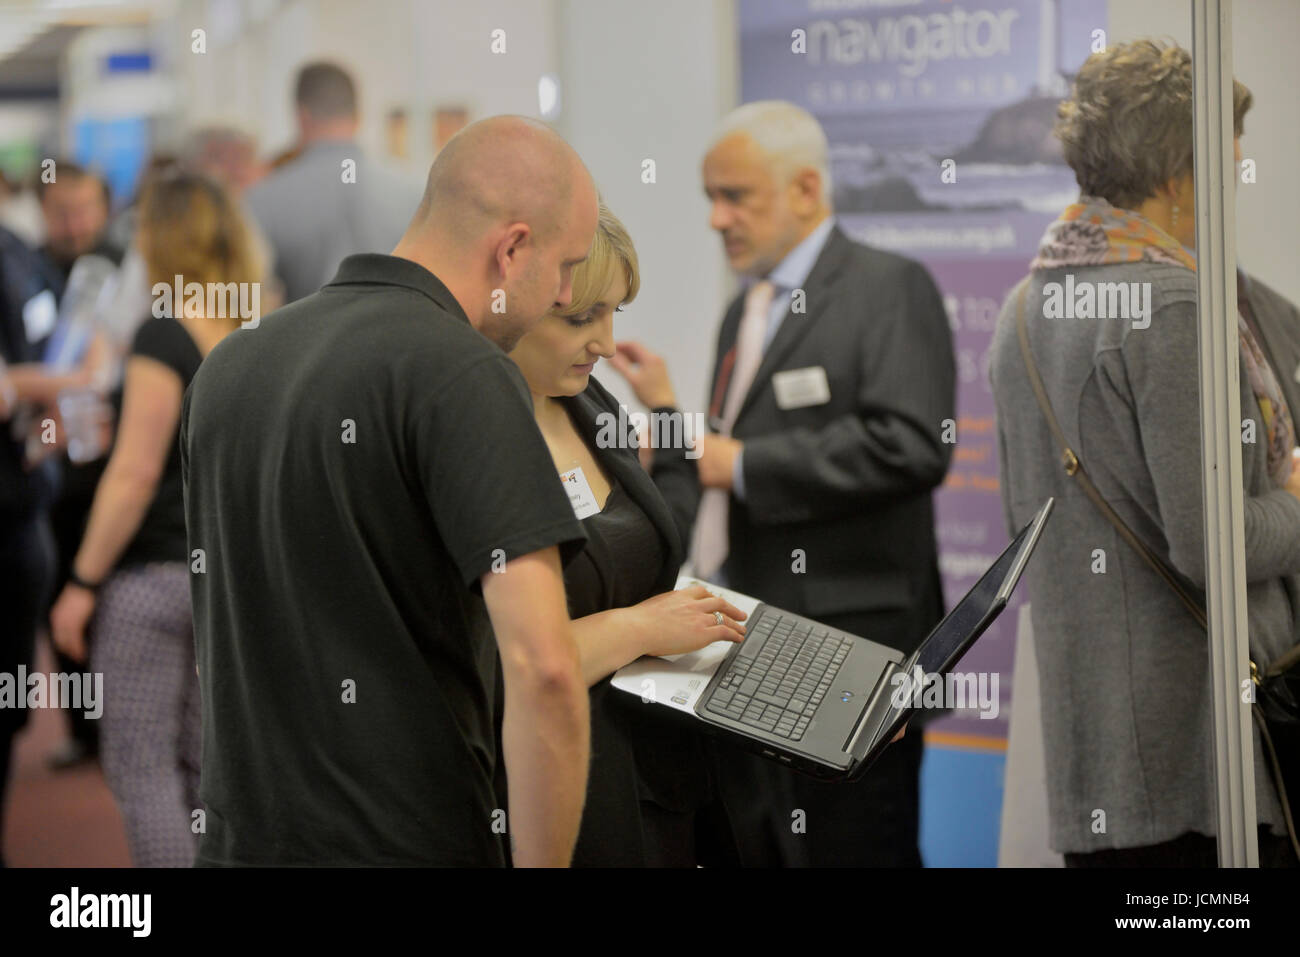 Business people using a laptop at a business conference. England. UK - Stock Image